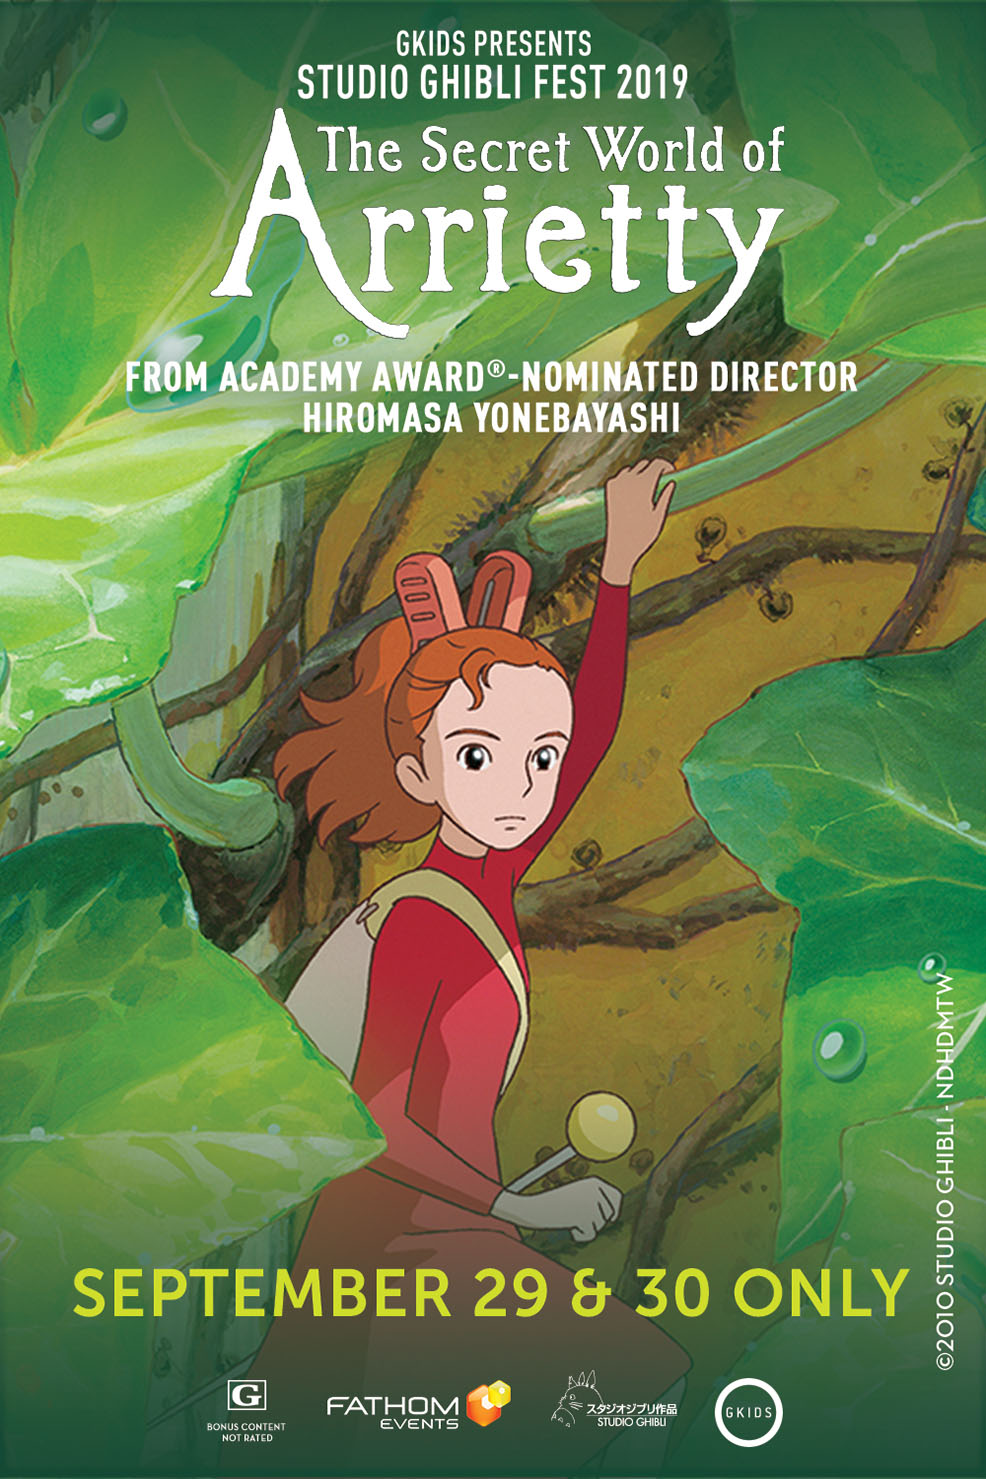 The Secret World of Arrietty - Studio Ghibli Fest Poster